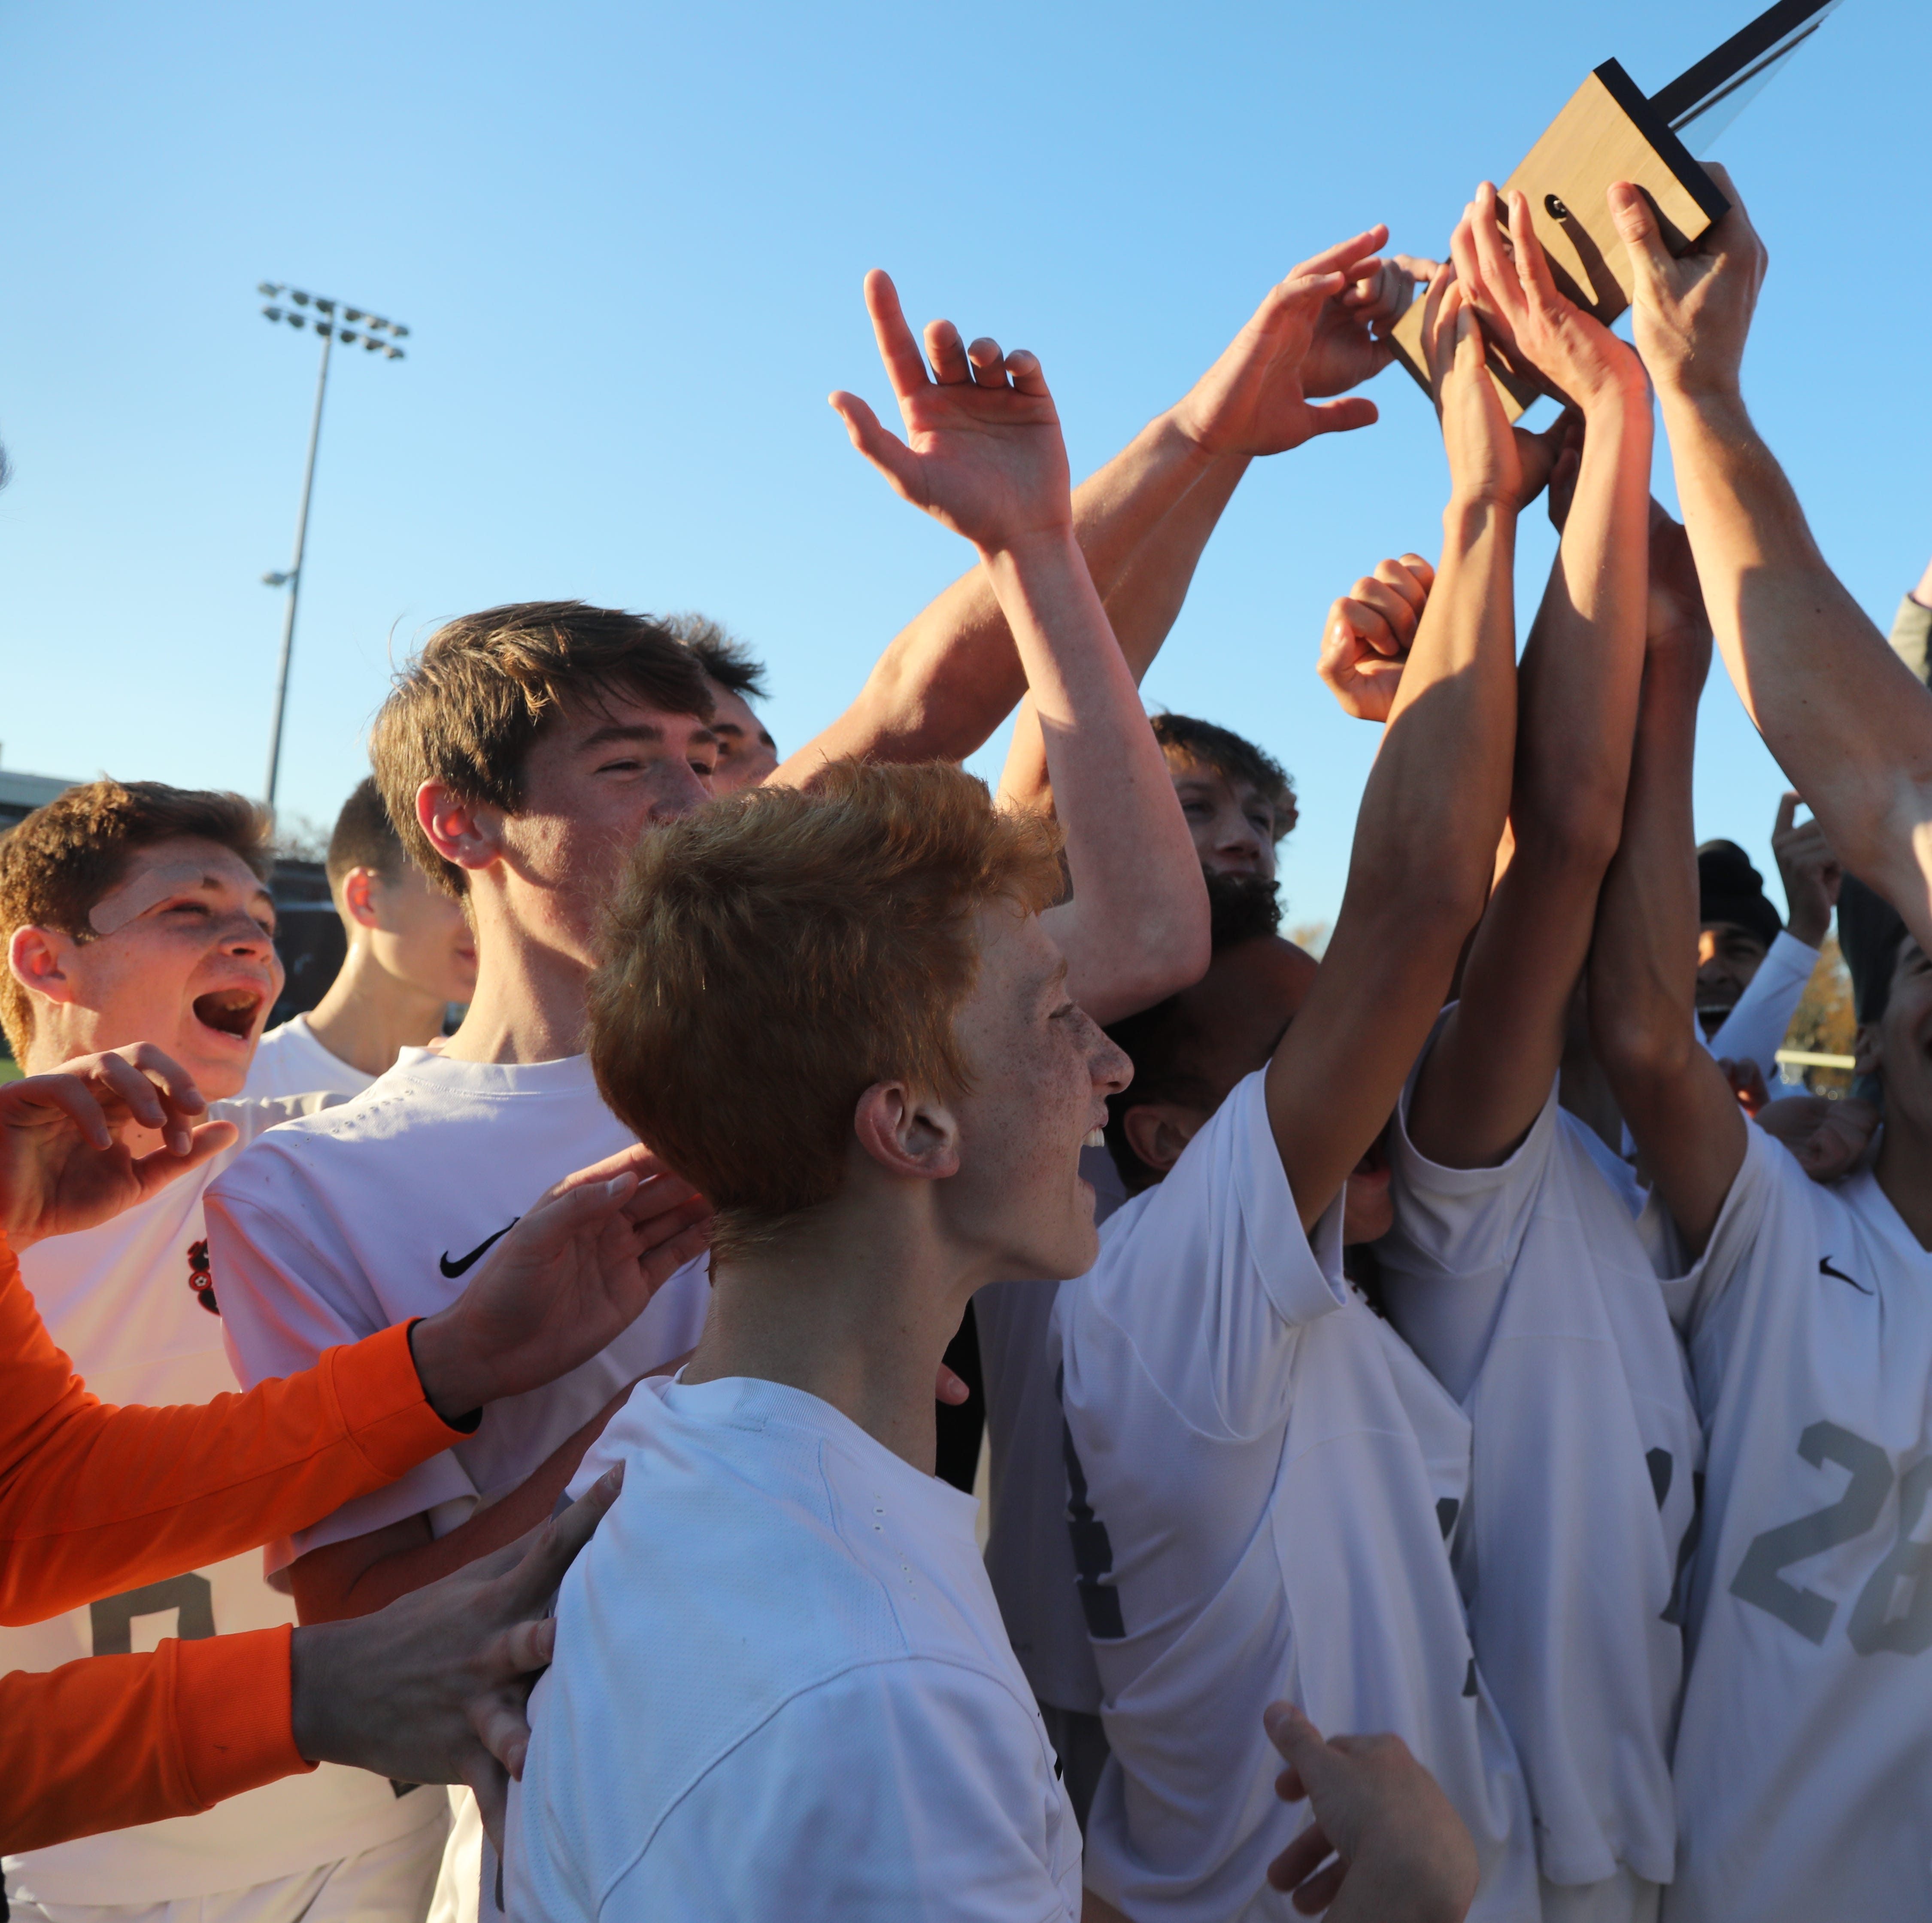 Glen Rock boys soccer has a chance to go down as one of Bergen's best